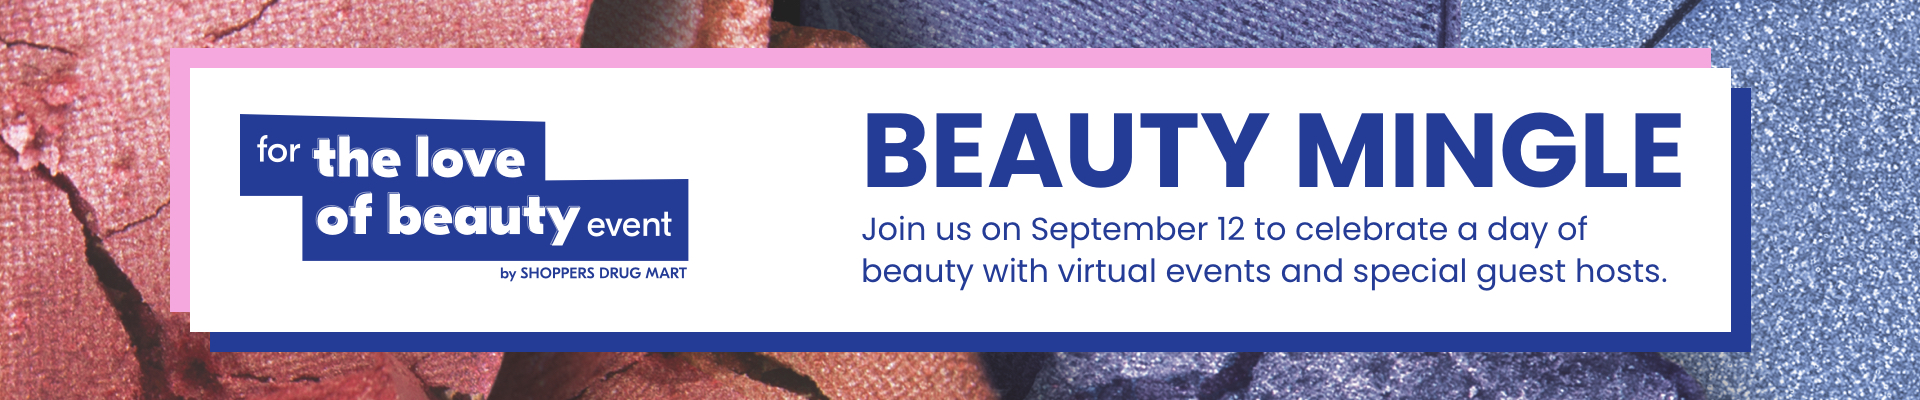 Beauty Mingle. Join us on September 12 to celebrate a day of beauty with virtual events hosted by special guests